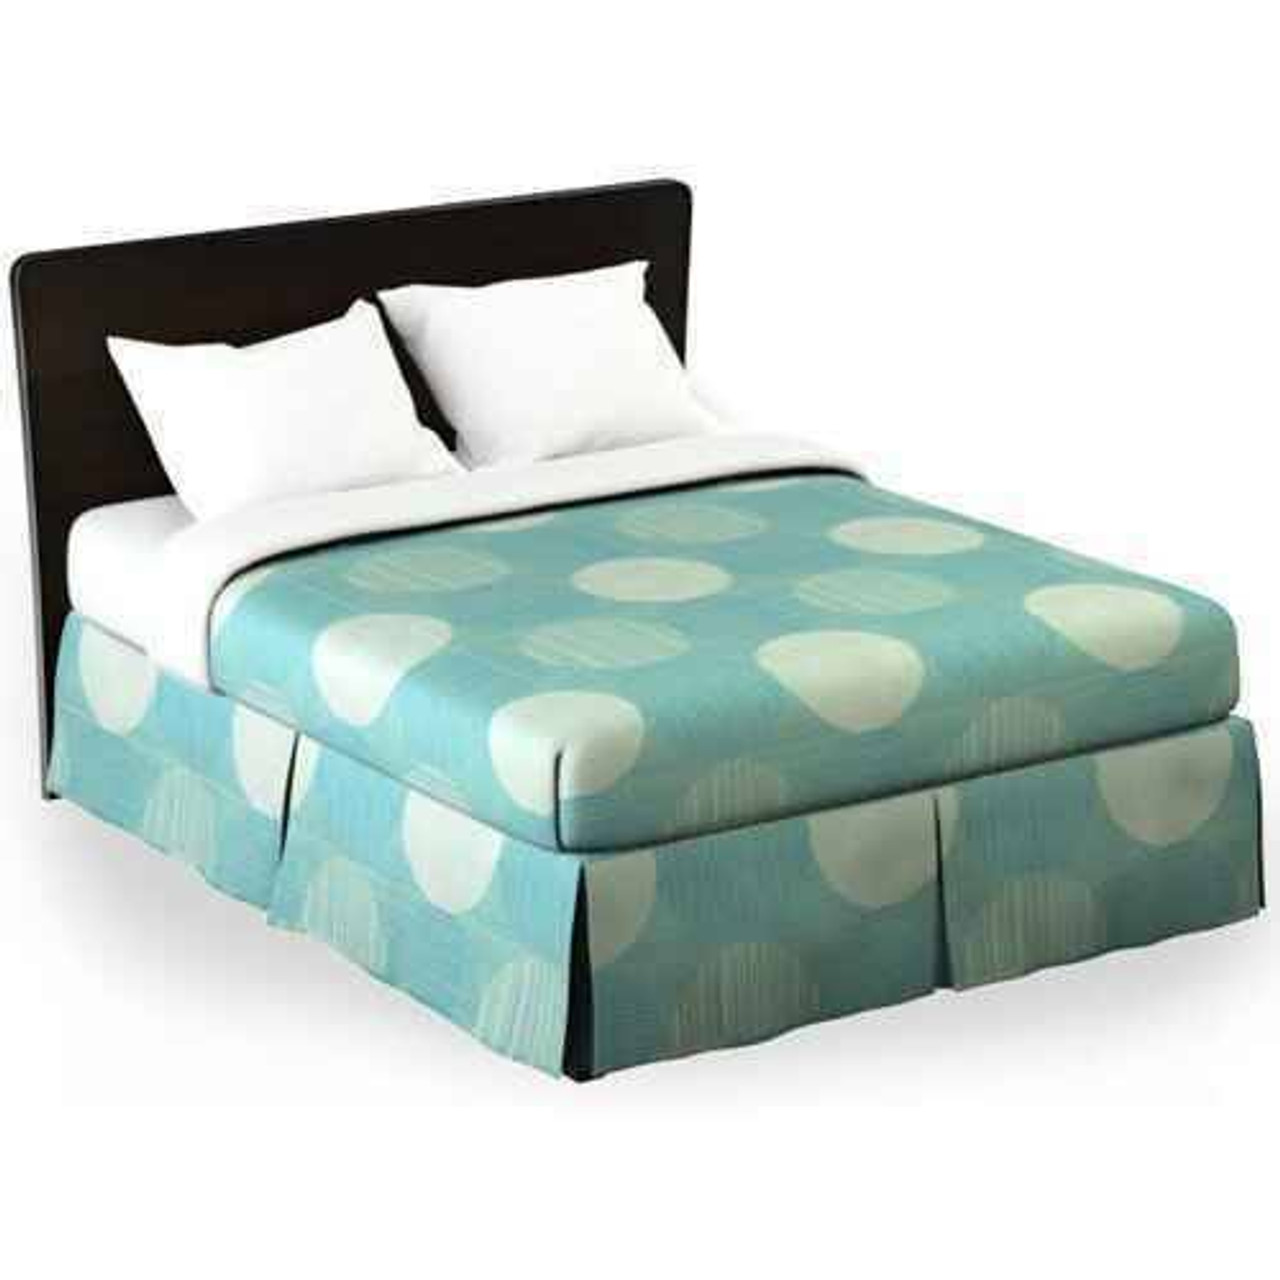 WestPoint/Martex Westpoint or Martex Rx or Bed Skirt or Circles and Stripes Aqua or Pack Of 12